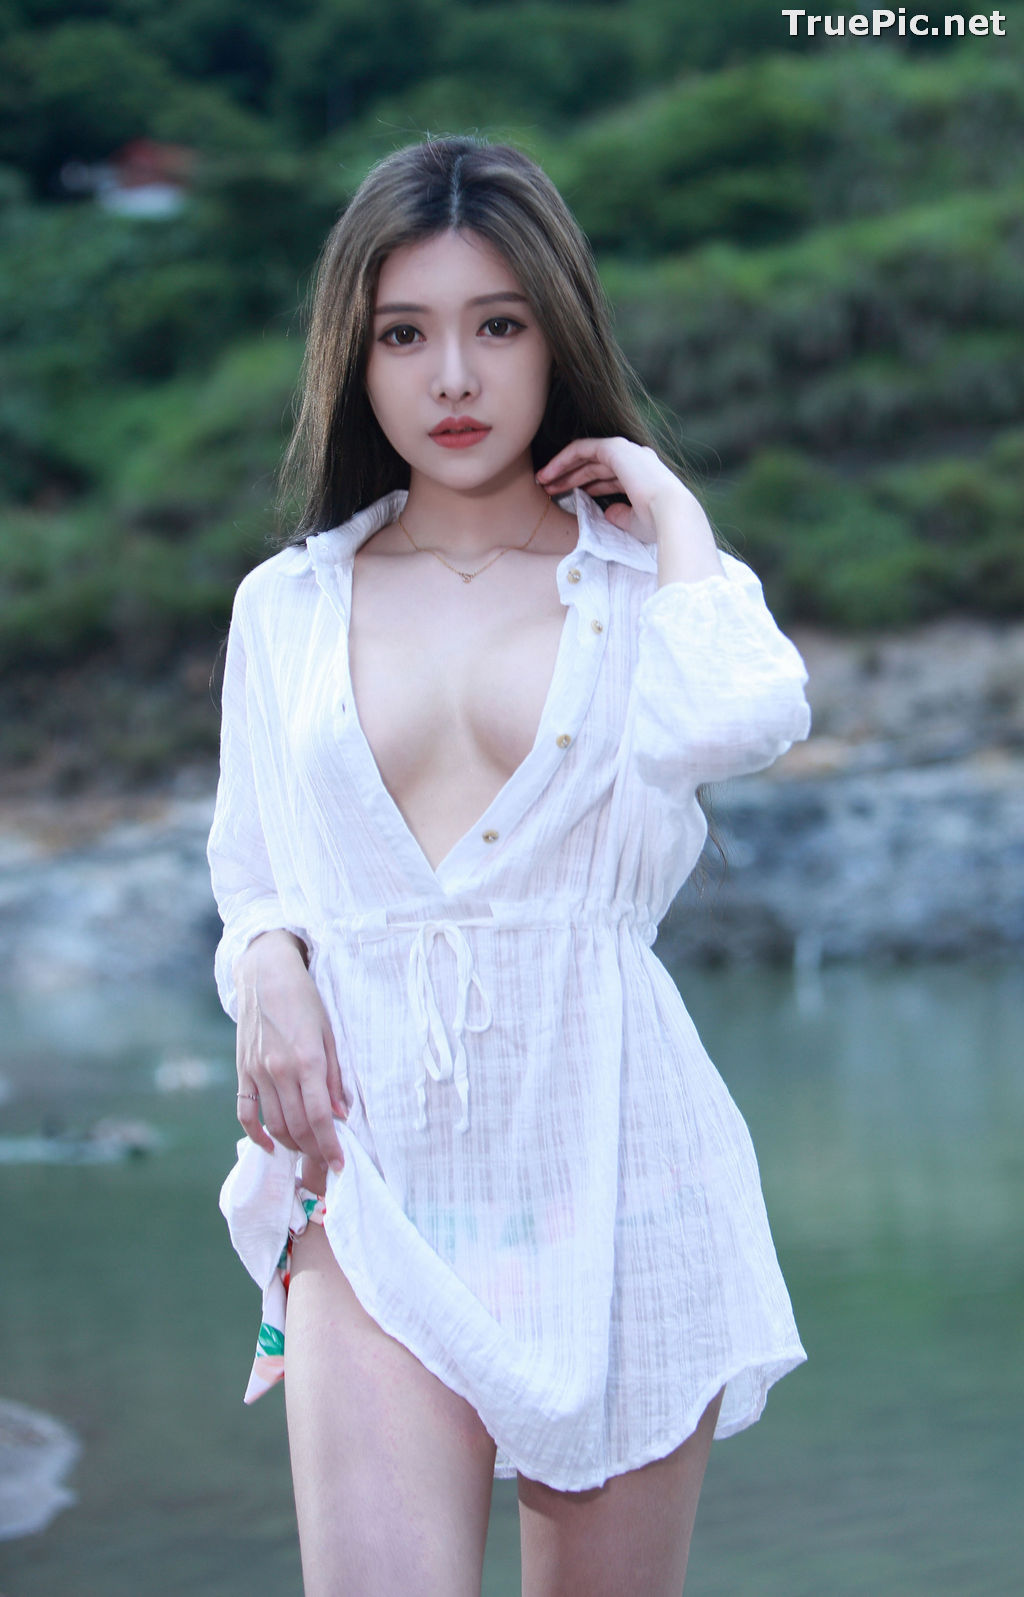 Image Taiwanese Model - 莊舒潔 - Sexy and Beautiful Big Eyes Girl- TruePic.net - Picture-6